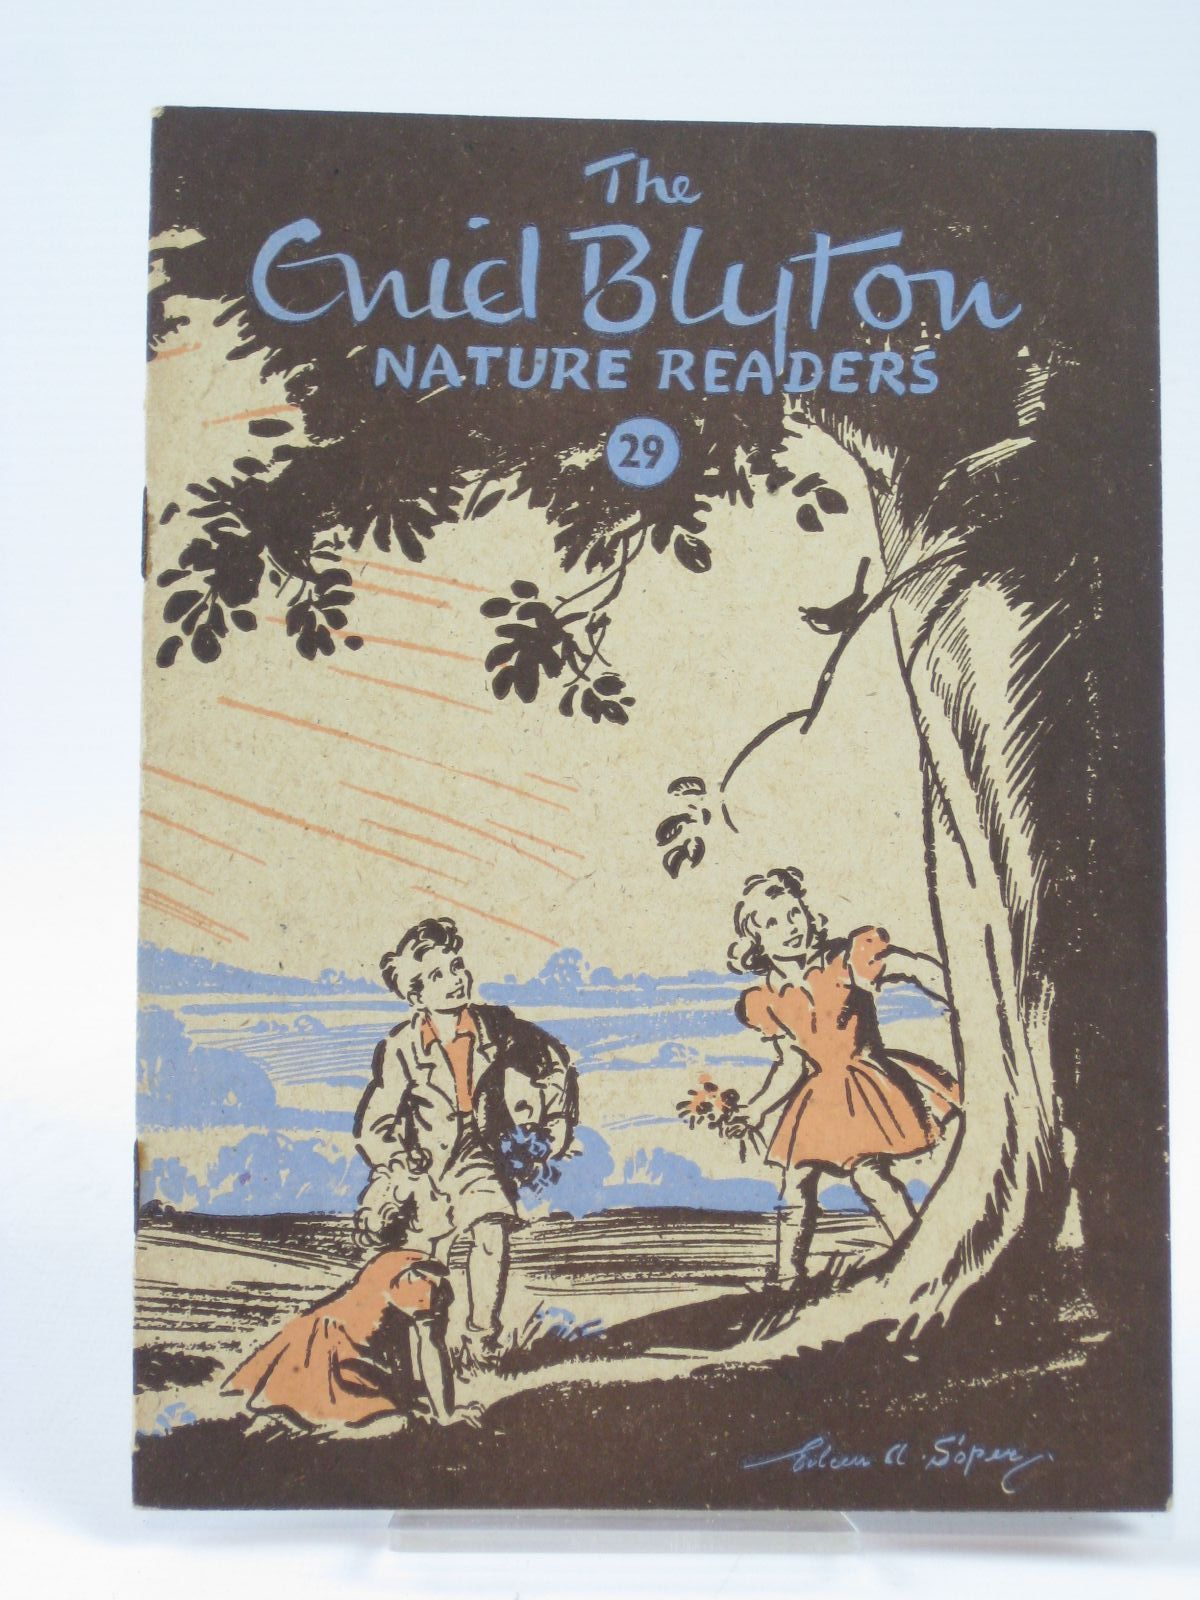 Photo of THE ENID BLYTON NATURE READERS No. 29 written by Blyton, Enid illustrated by Soper, Eileen published by Macmillan & Co. Ltd. (STOCK CODE: 1406274)  for sale by Stella & Rose's Books